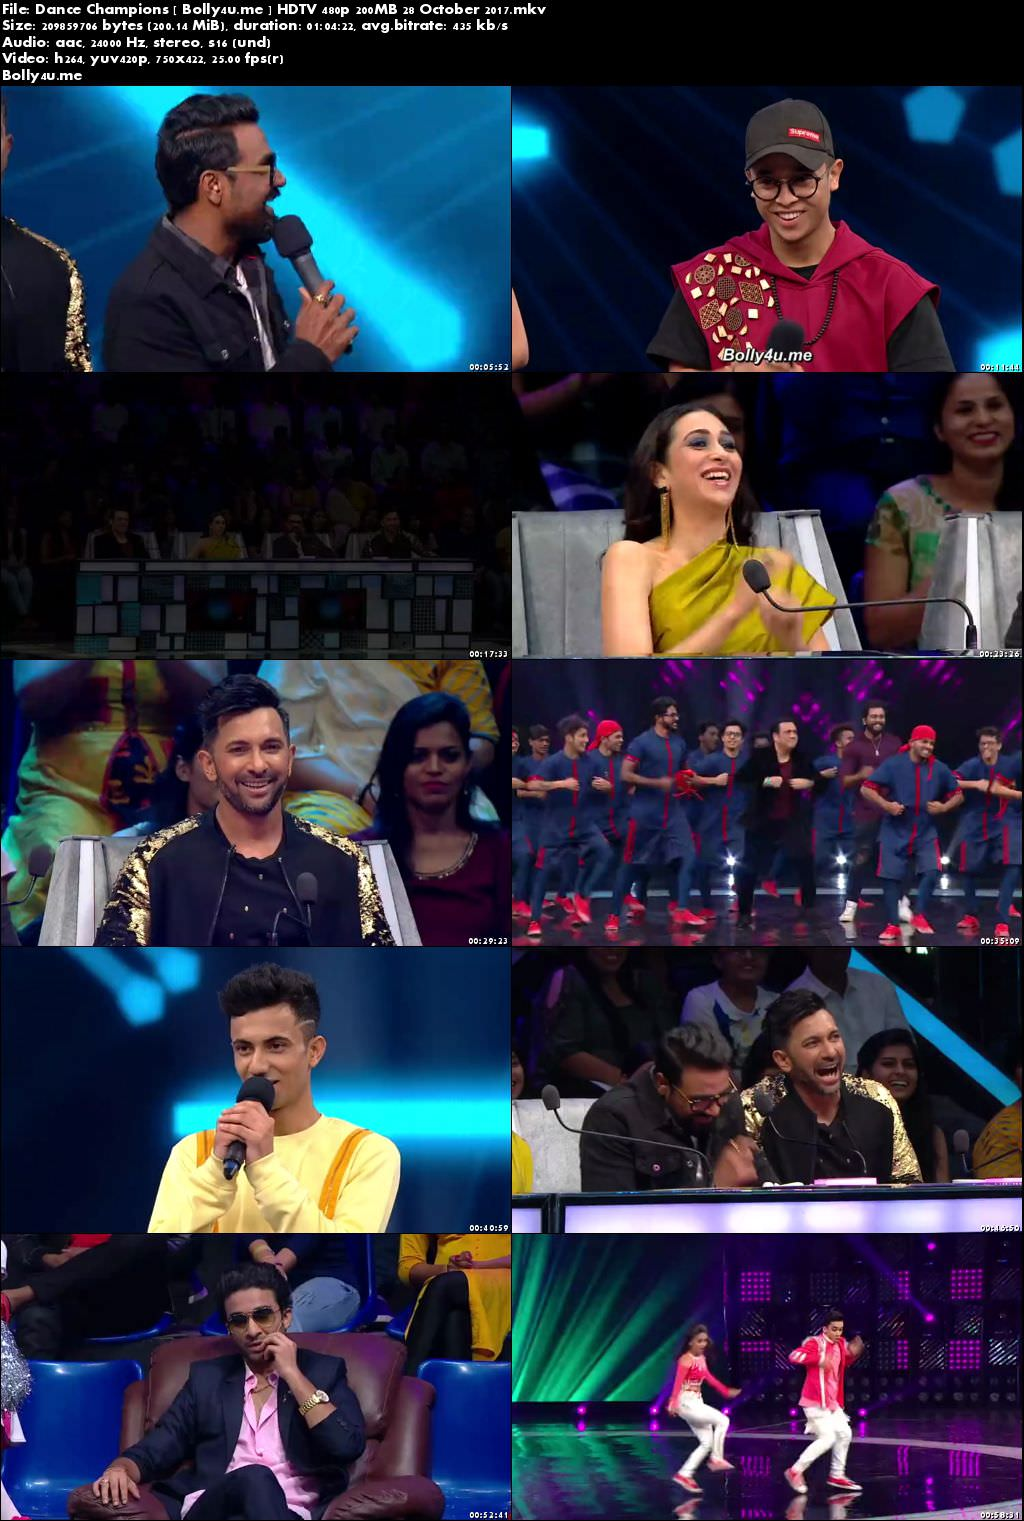 Dance Champions HDTV 480p 200MB 28 October 2017 Download